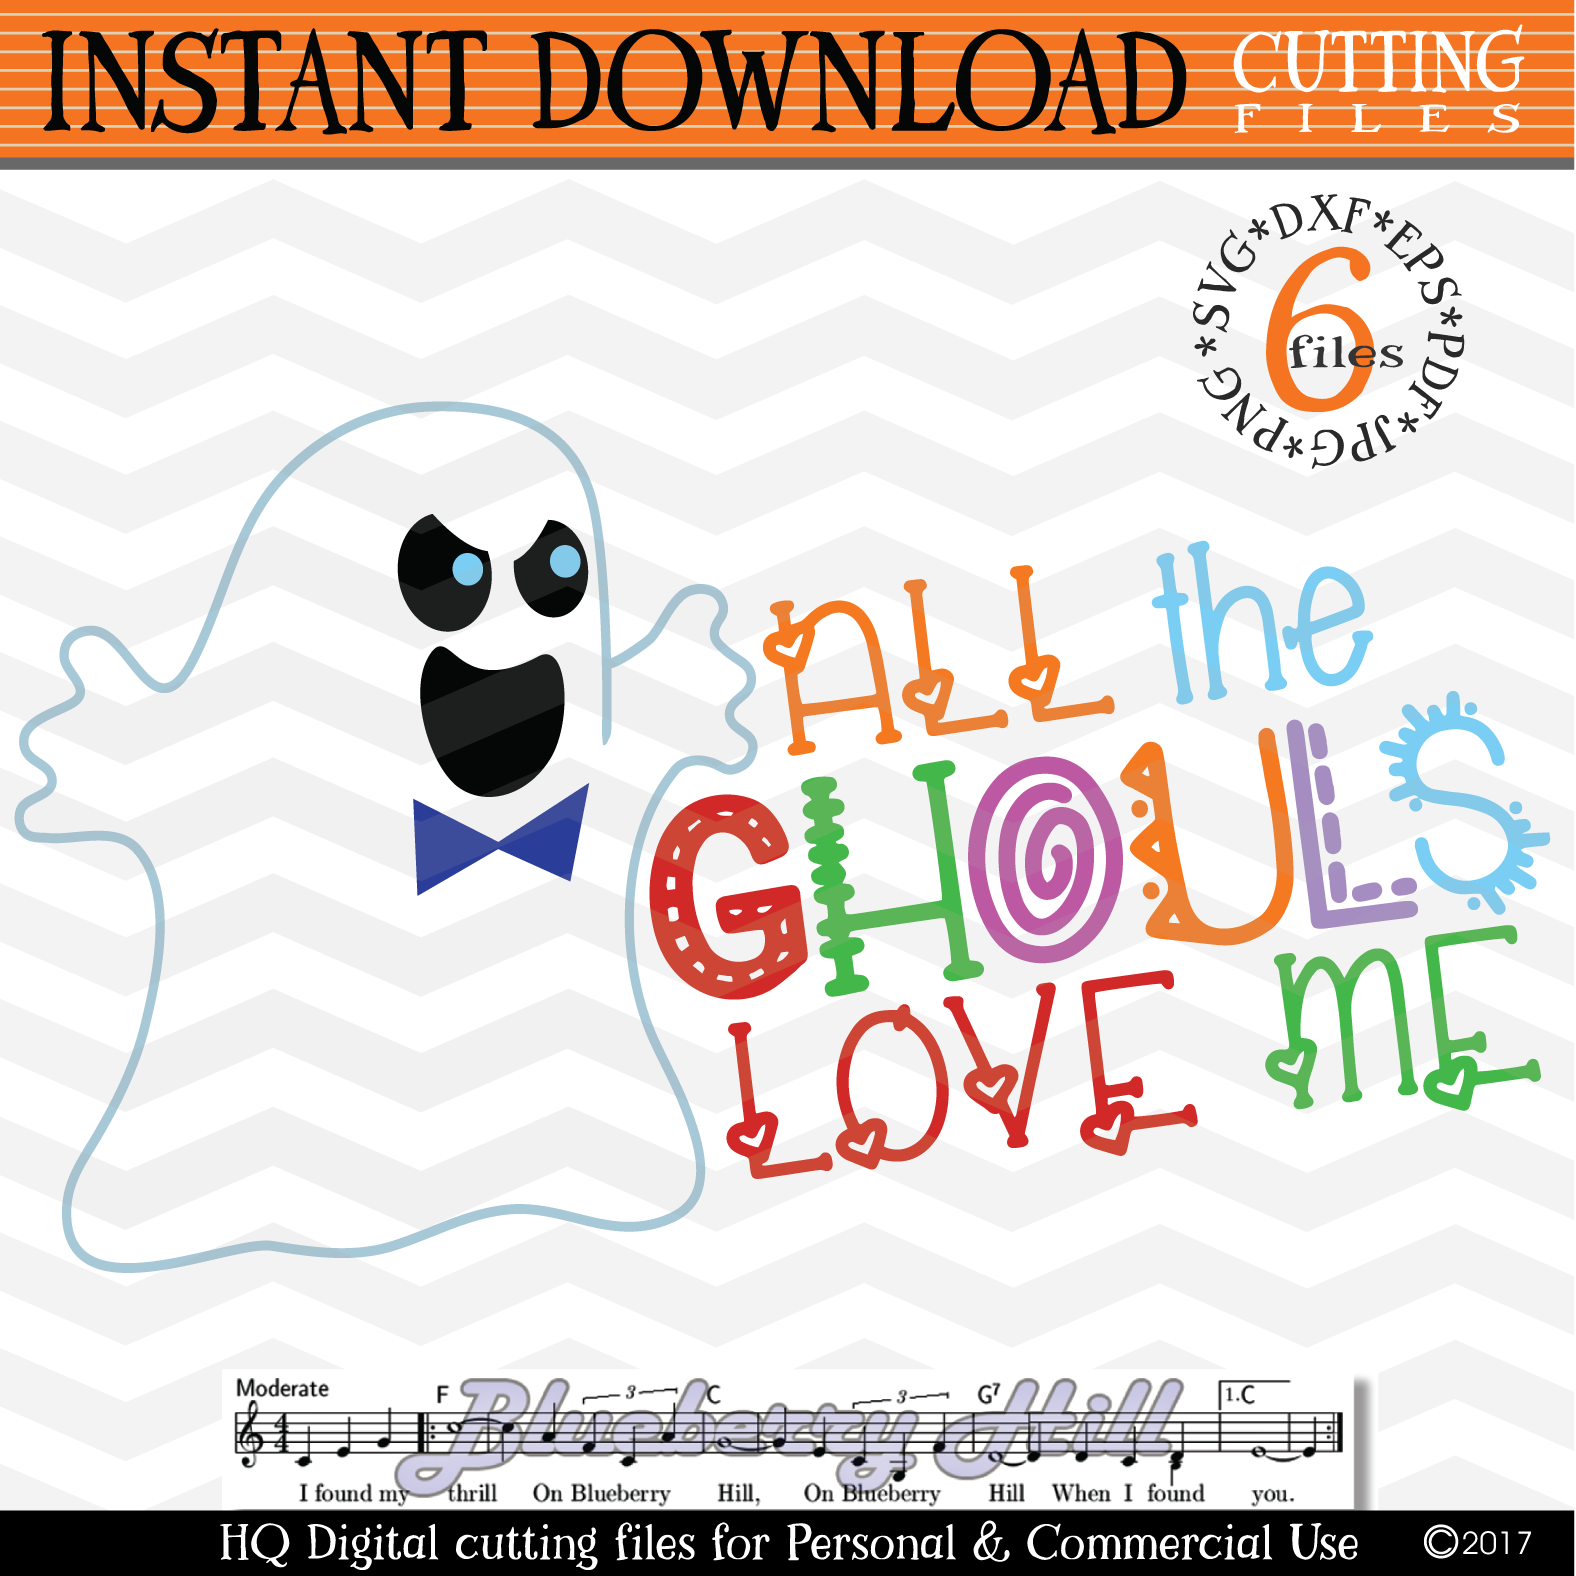 915+ All The Ghouls Love Me Svg Free Ppular Design